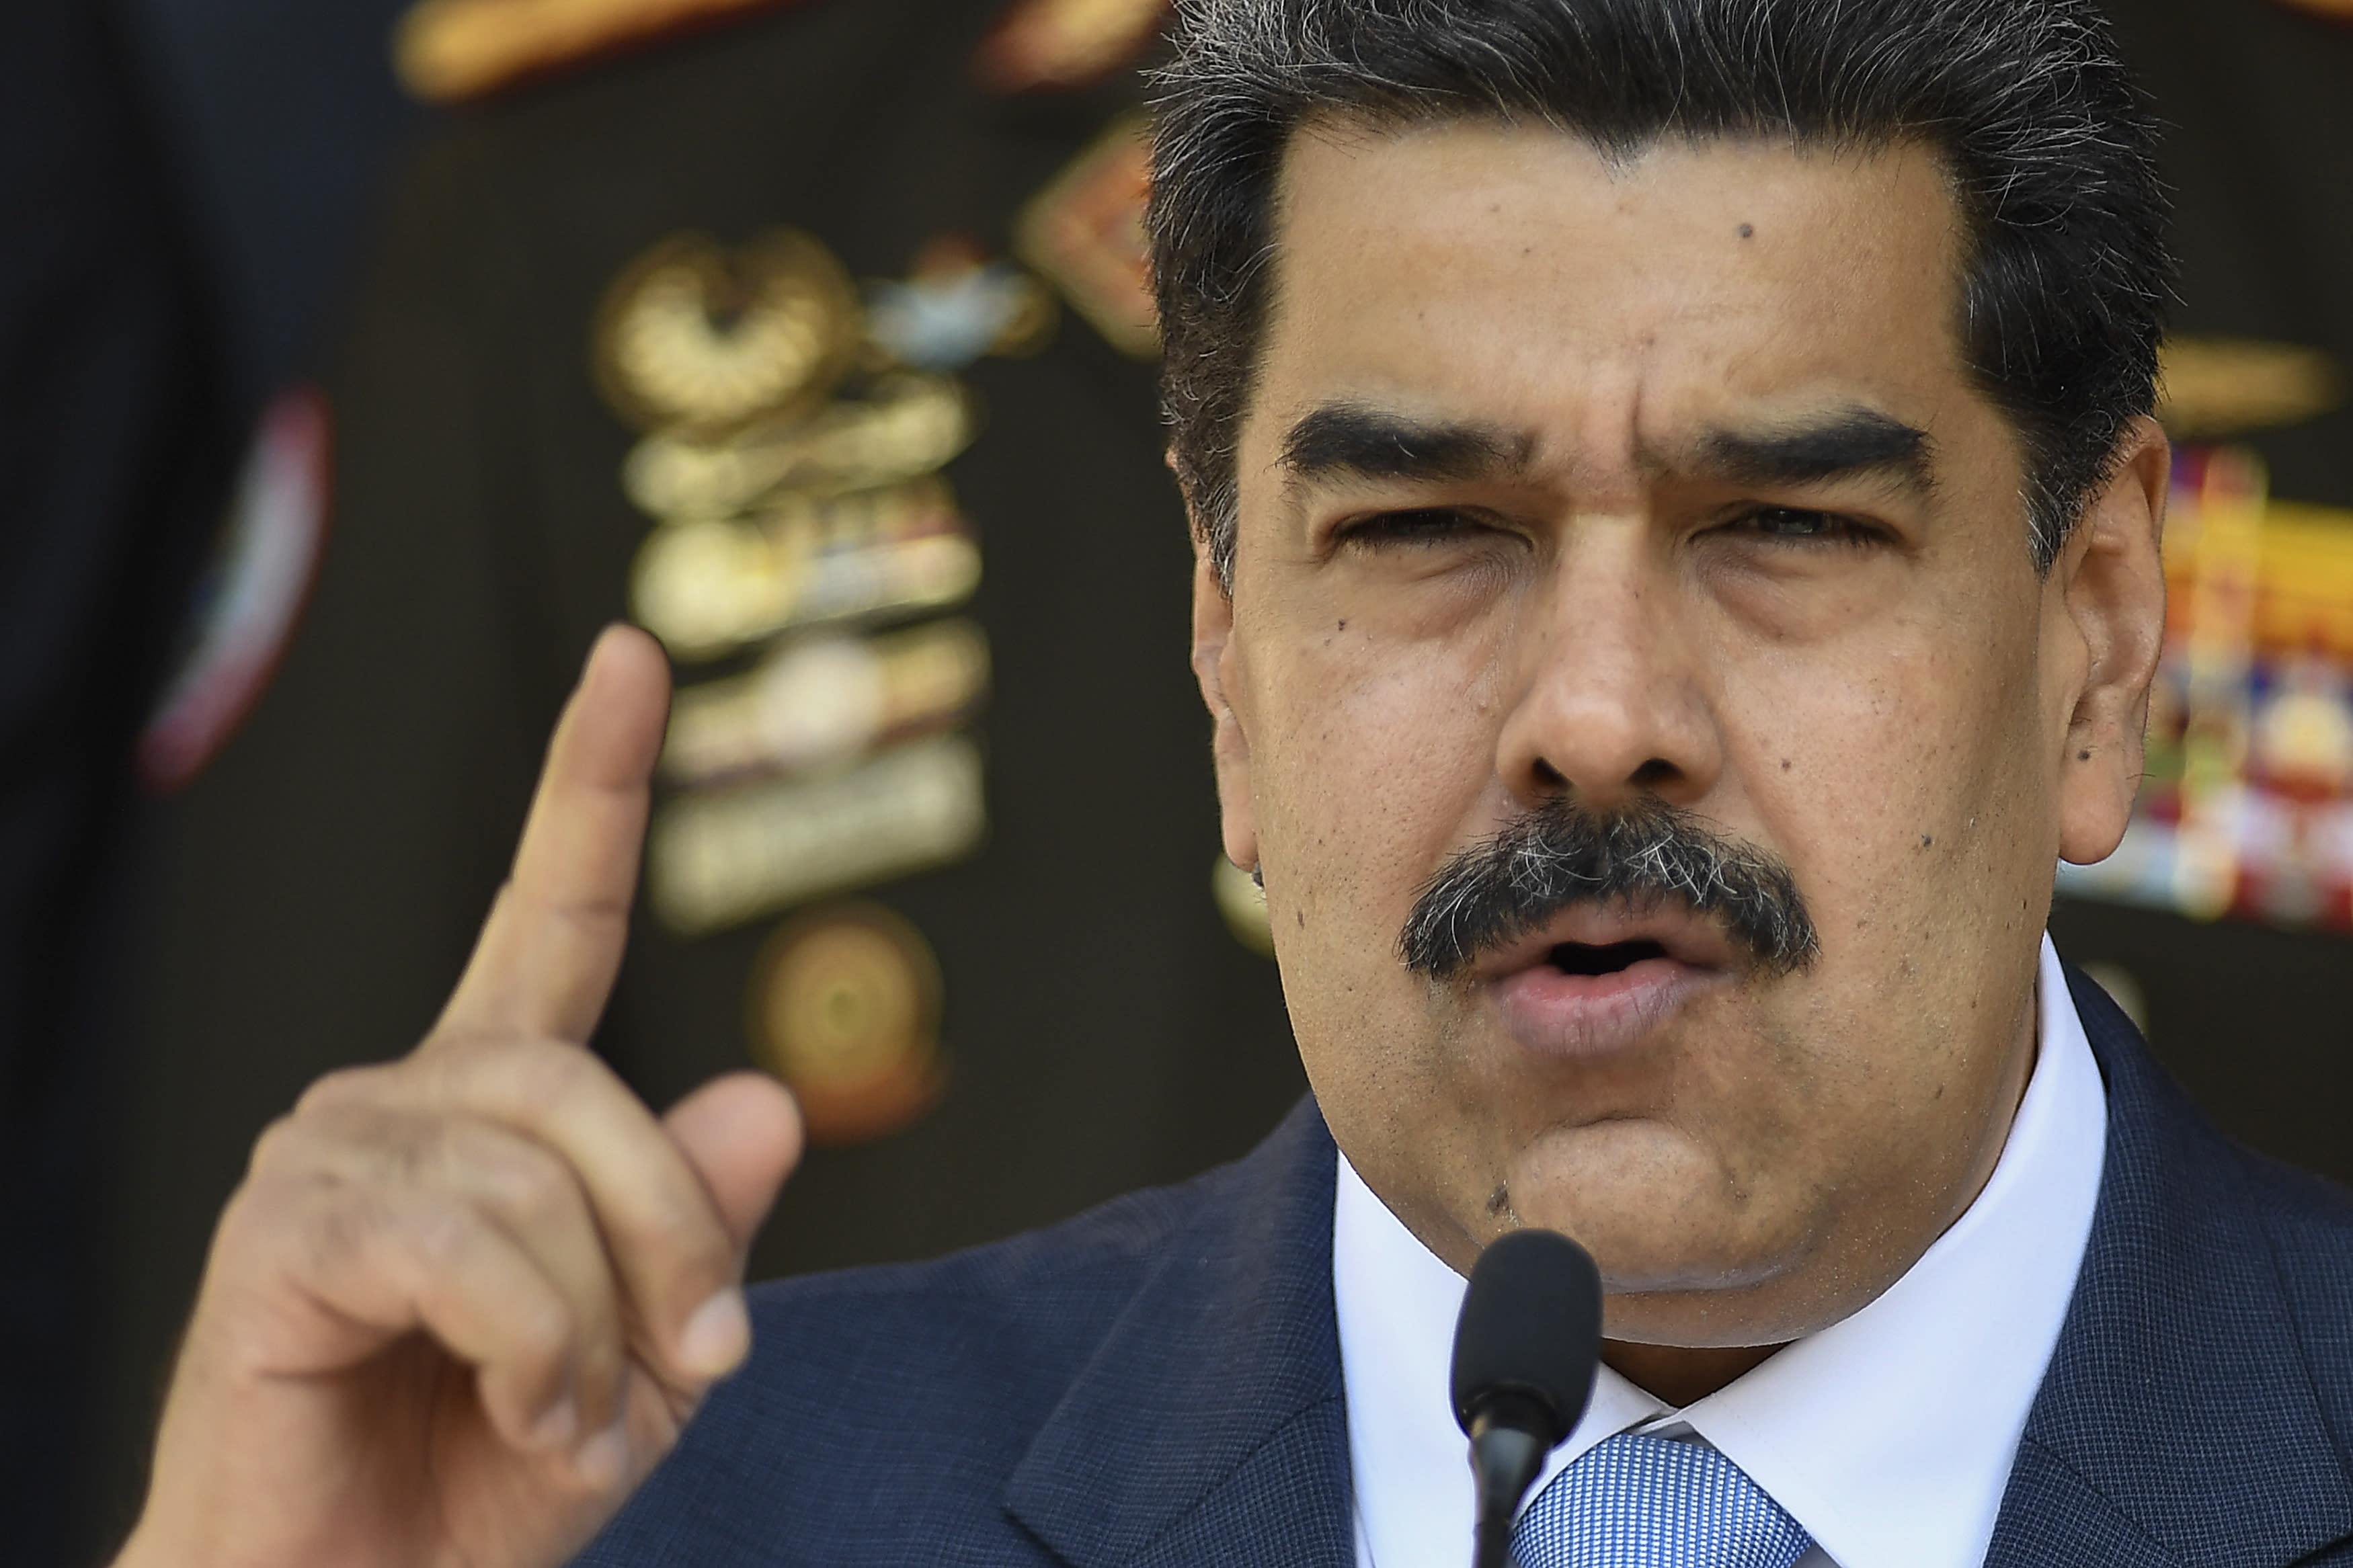 FILE - In this March 12, 2020, file photo, Venezuelan President Nicolas Maduro speaks at a press conference at the Miraflores Presidential Palace in Caracas, Venezuela. The Trump administration will announce Thursday, March 26, 2020, indictments against Maduro and members of his inner circle for effectively converting Venezuela's state into a criminal enterprise at the service of drug traffickers and terrorist groups, according to multiple people familiar with the situation. (AP Photo/Matias Delacroix, File)